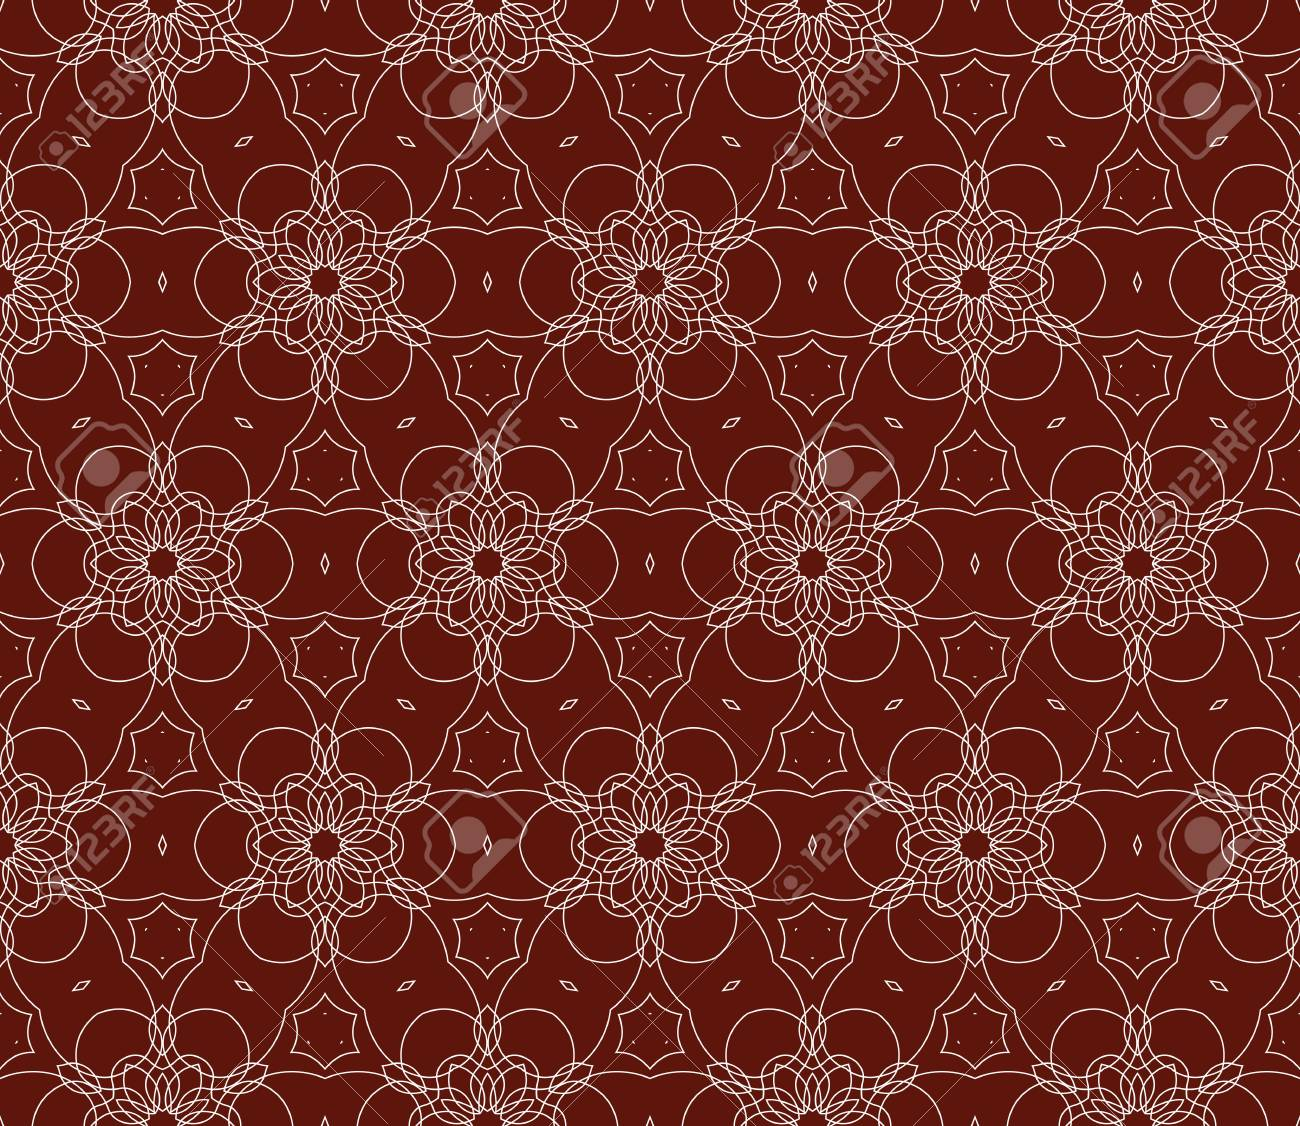 Seamless Dark Red And Silver Color Floral Pattern Illustration